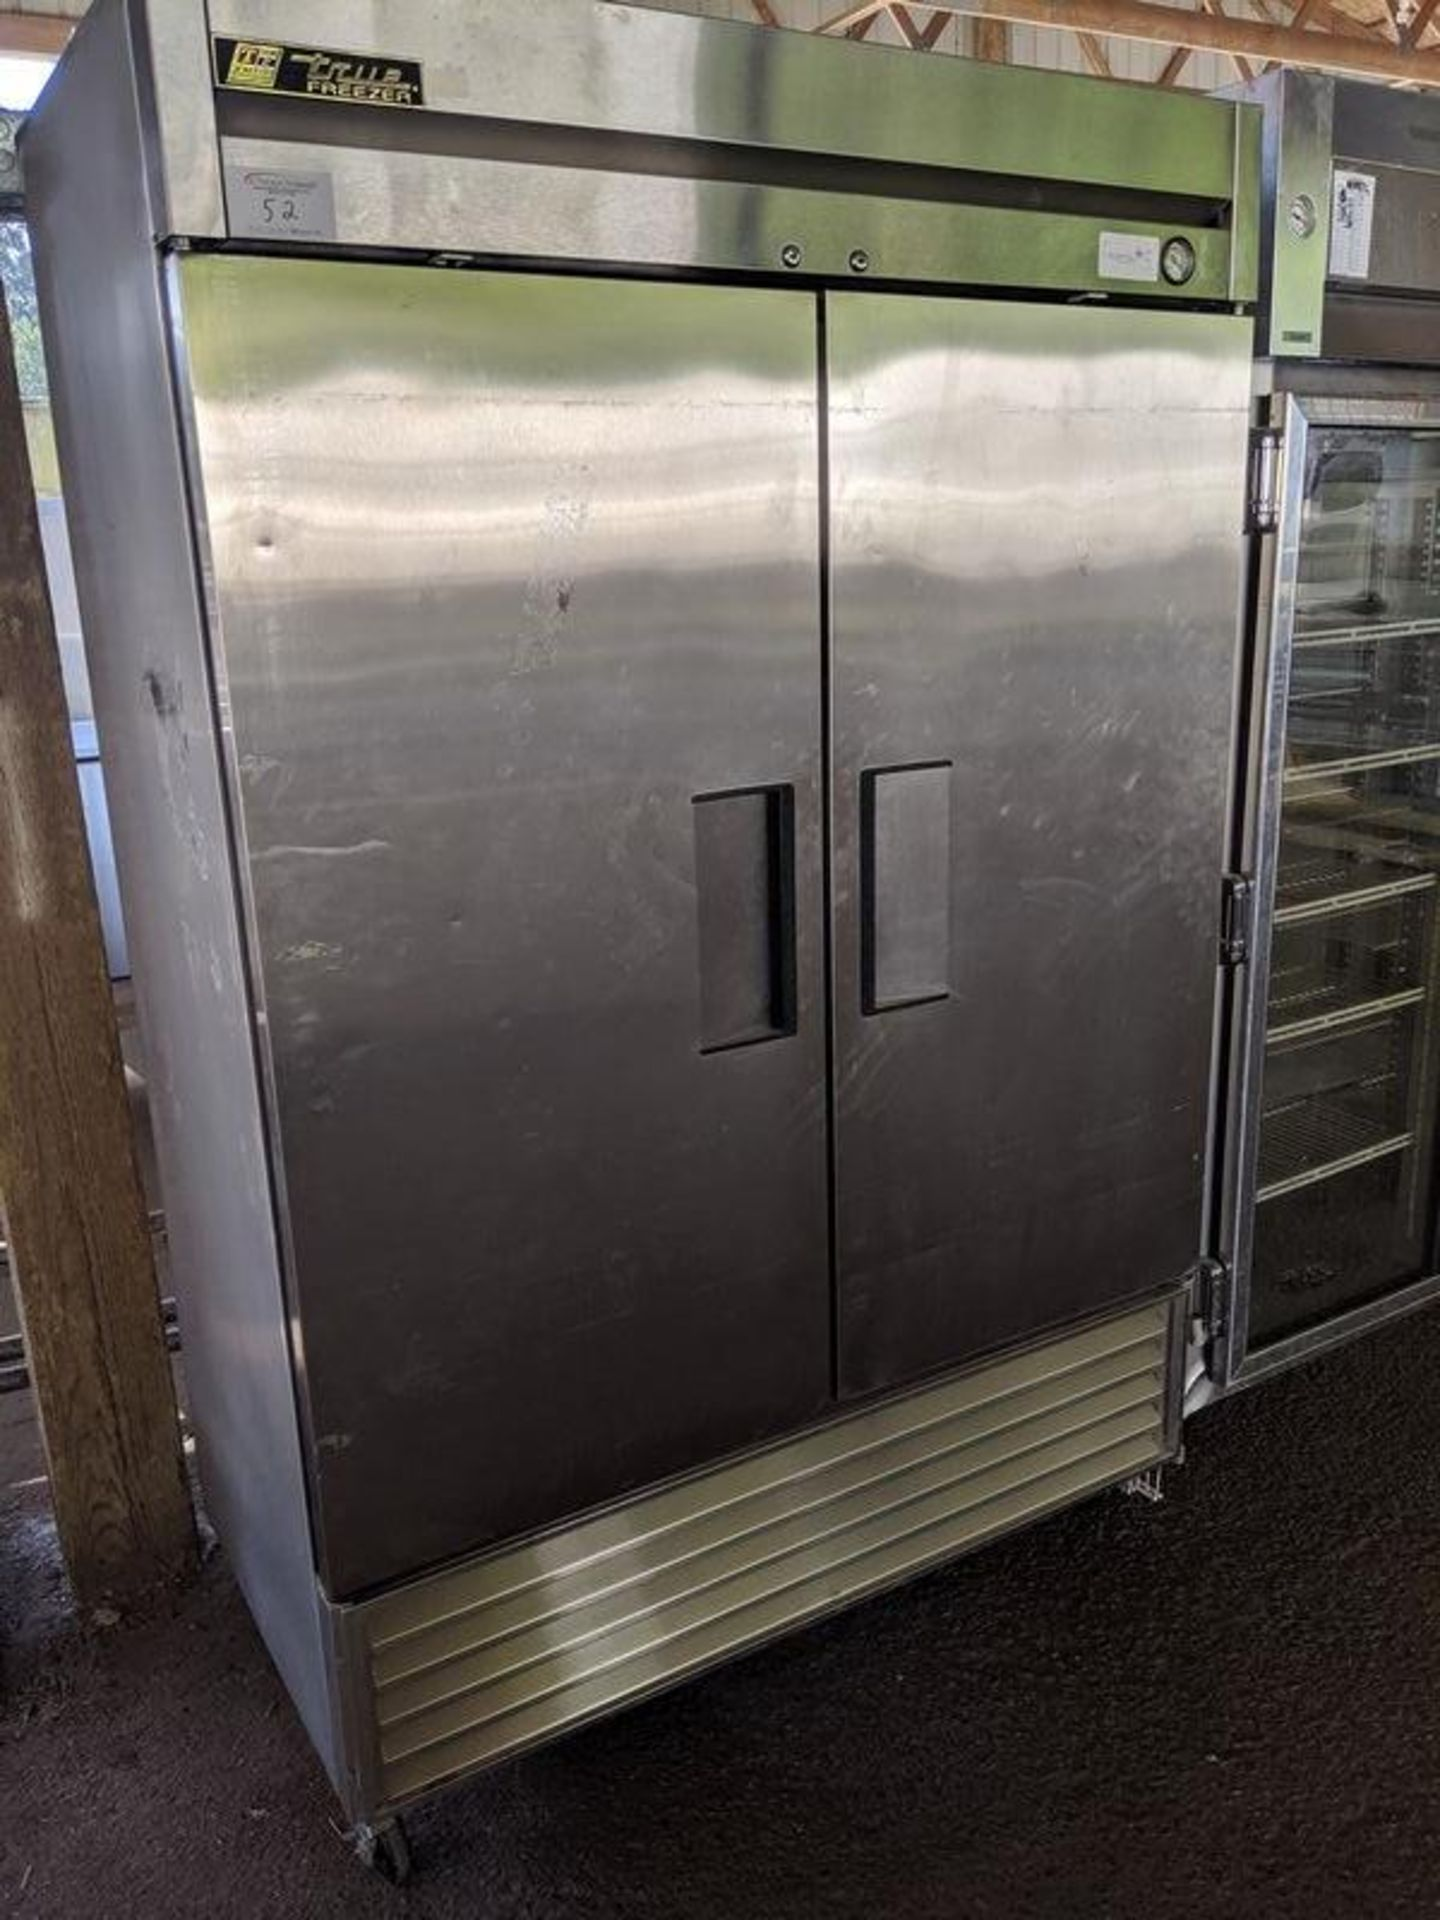 Lot 52 - True 2 Door Stainless Steel Freezer